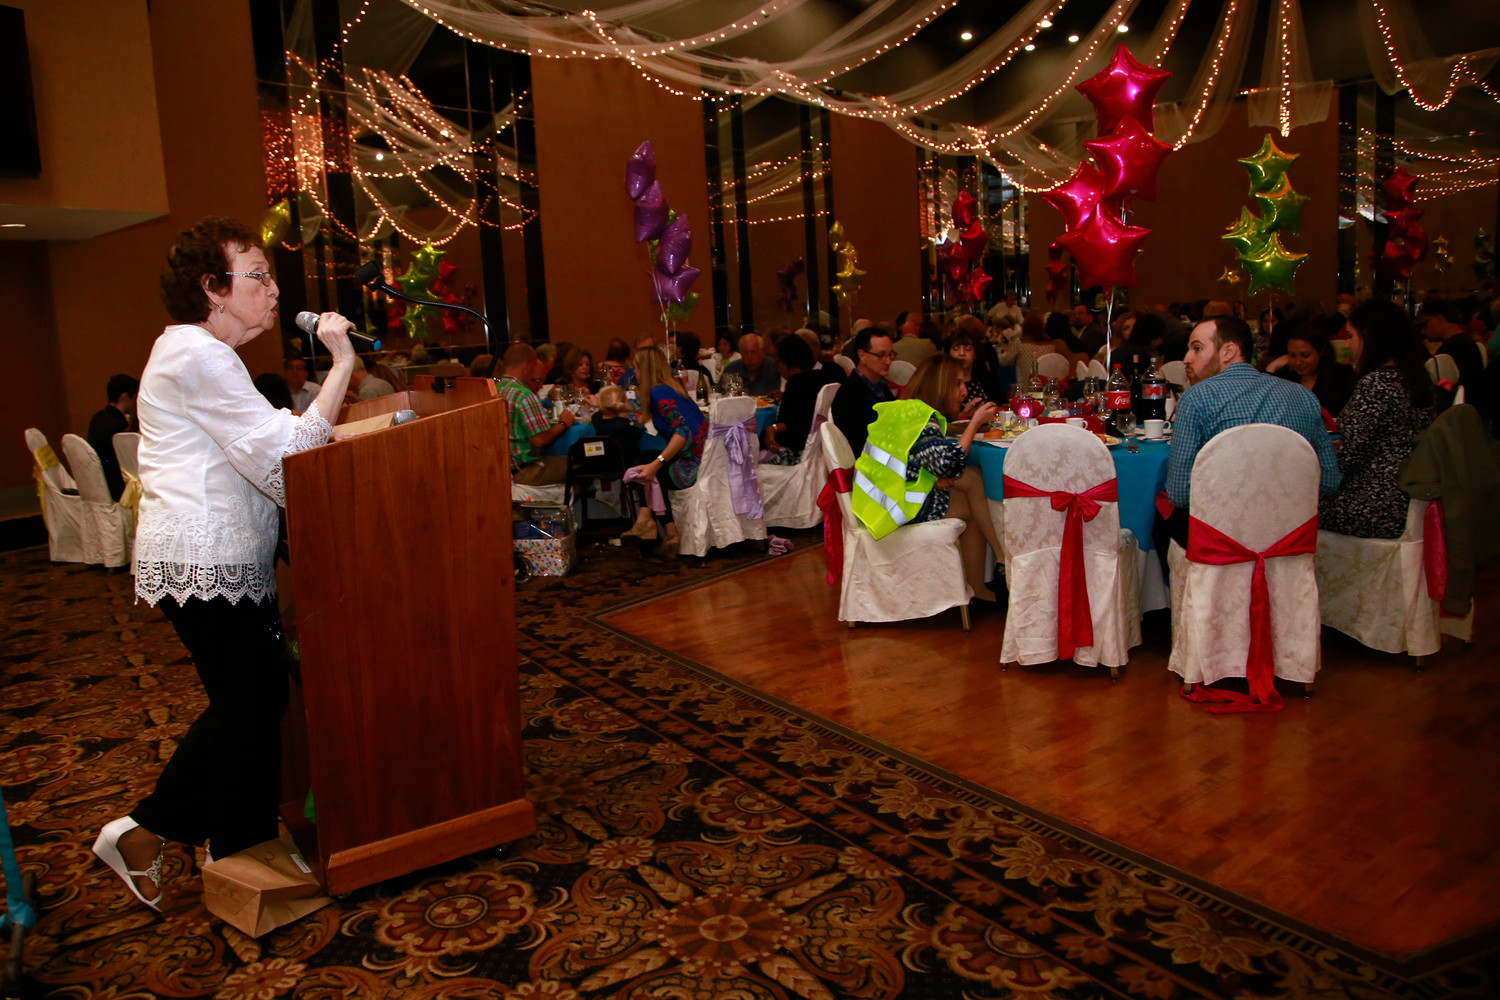 Oceanside resident Renee Klein addressed the audience at her annual fundraiser, which honors the Bernard Klein Charity Fund, named in memory of her late husband.